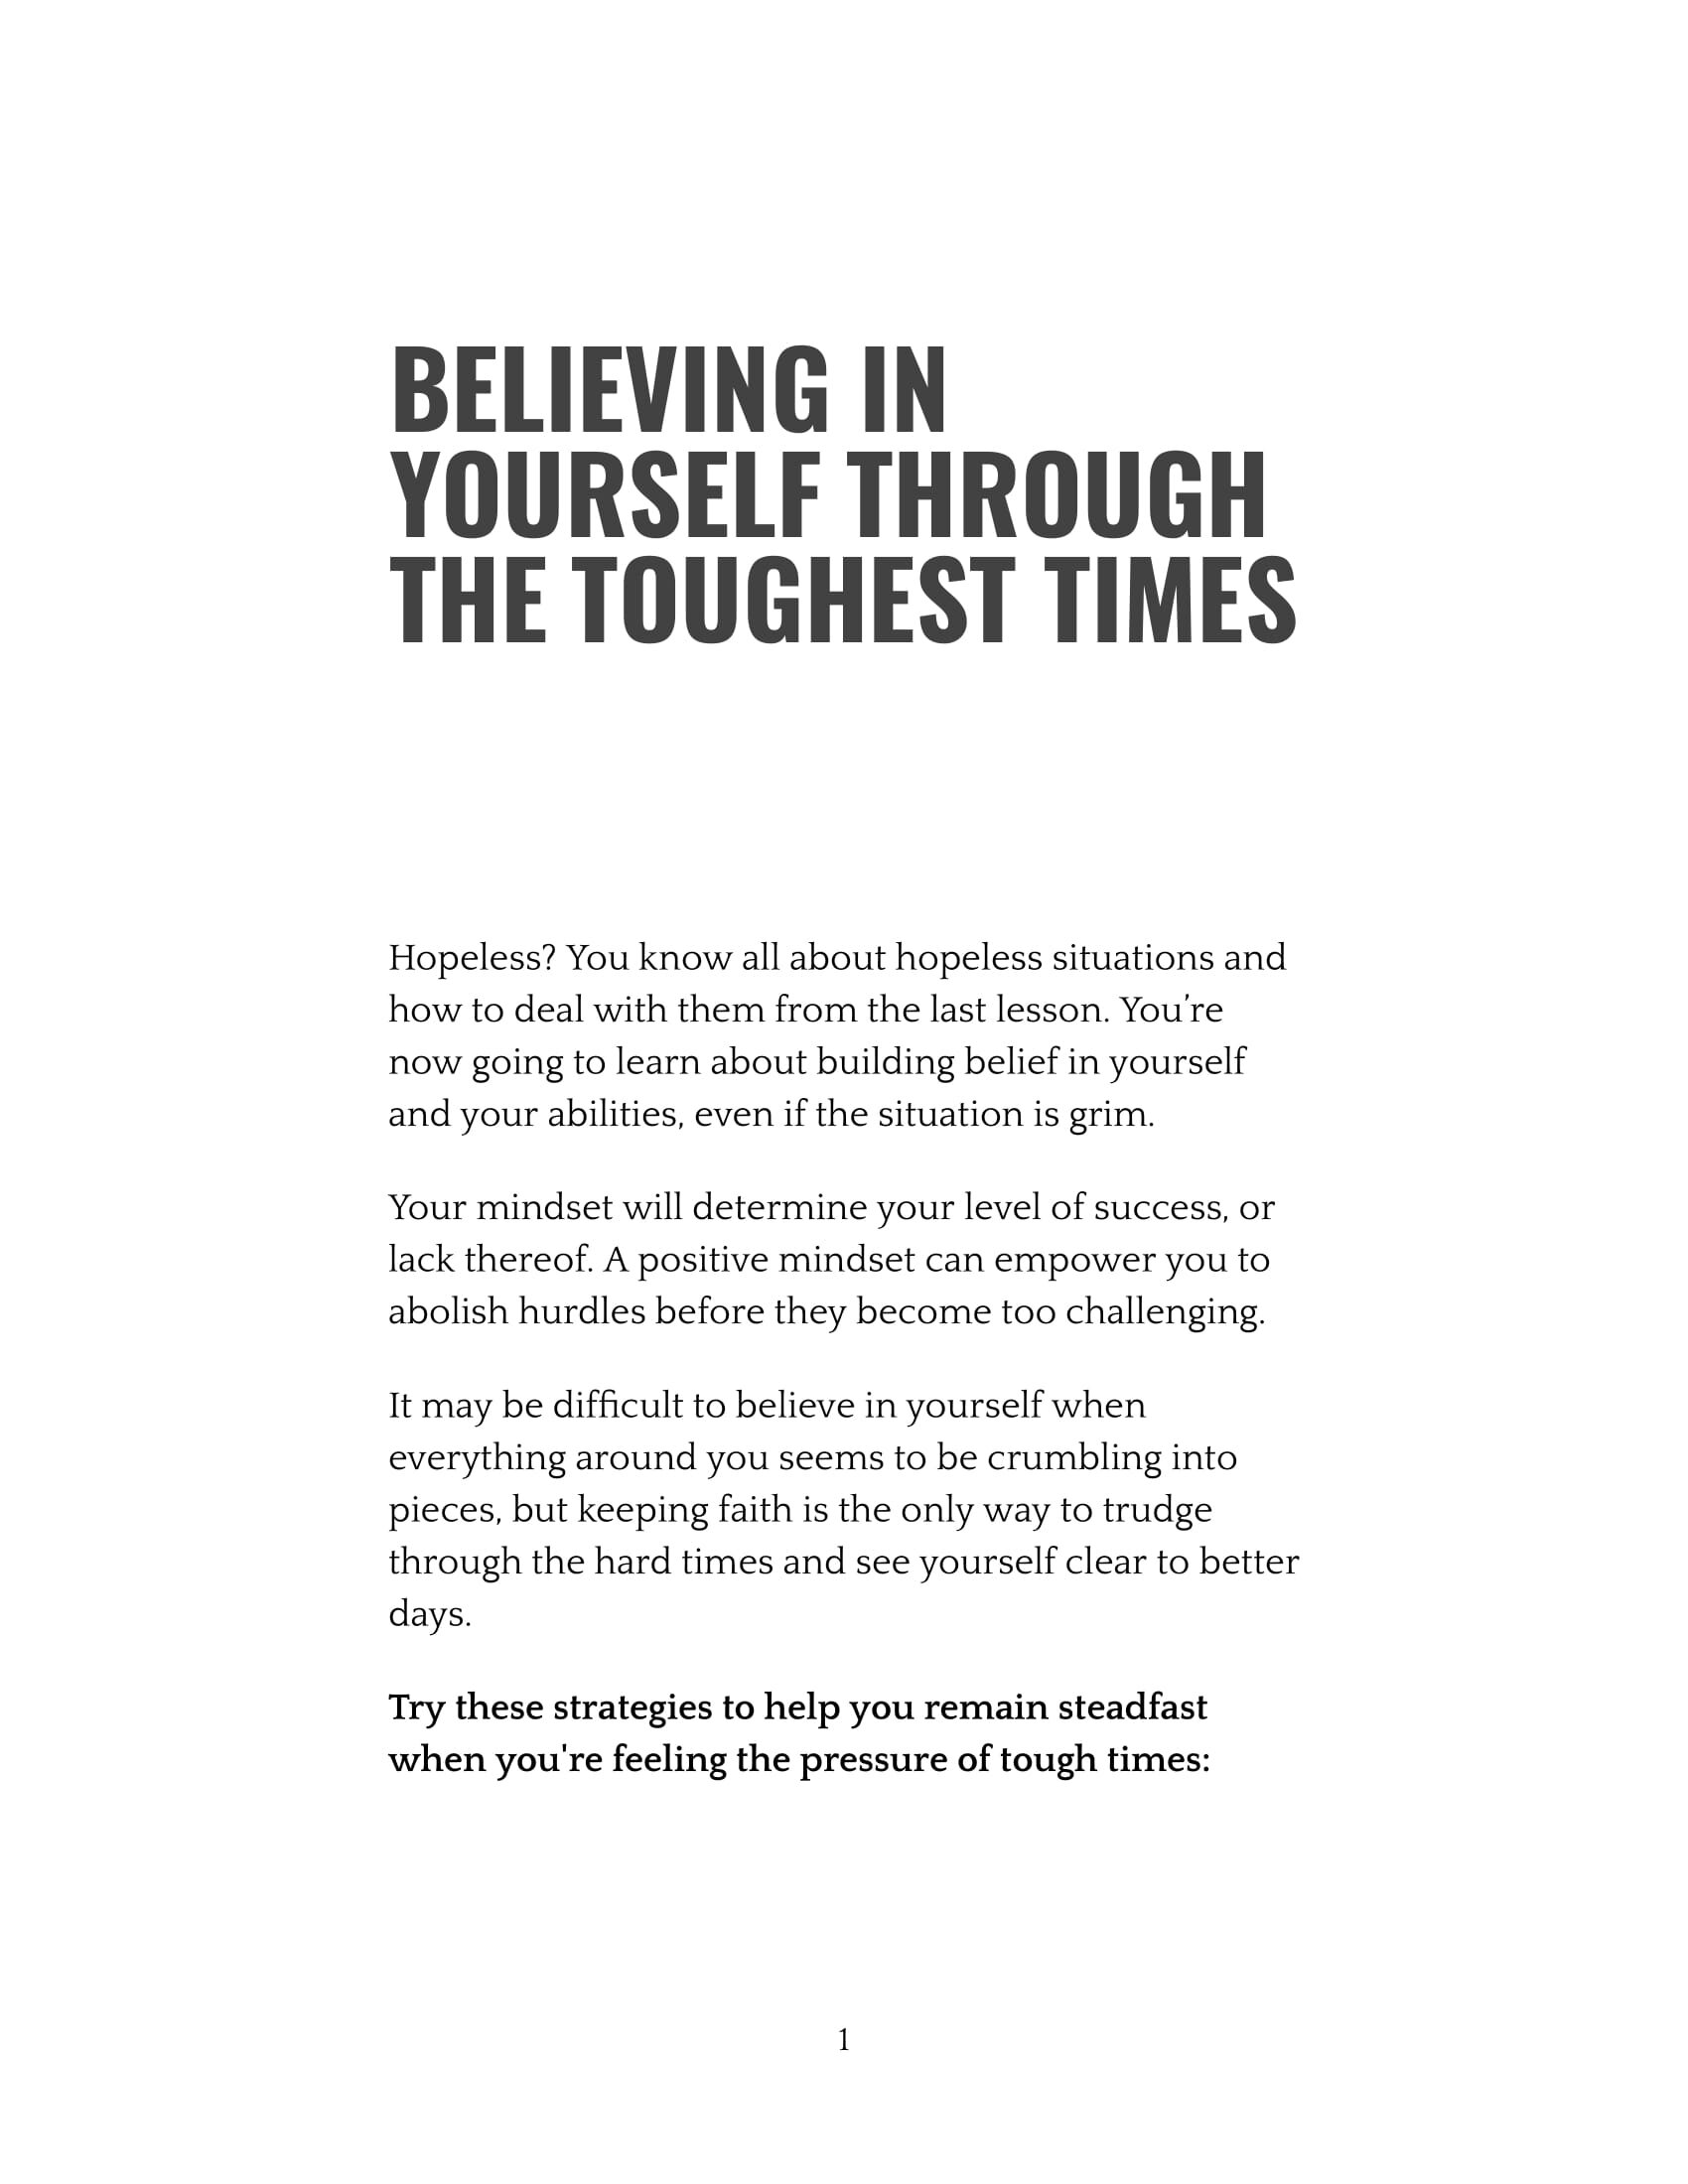 Believing In Yourself Through The Toughest Times-1.jpg